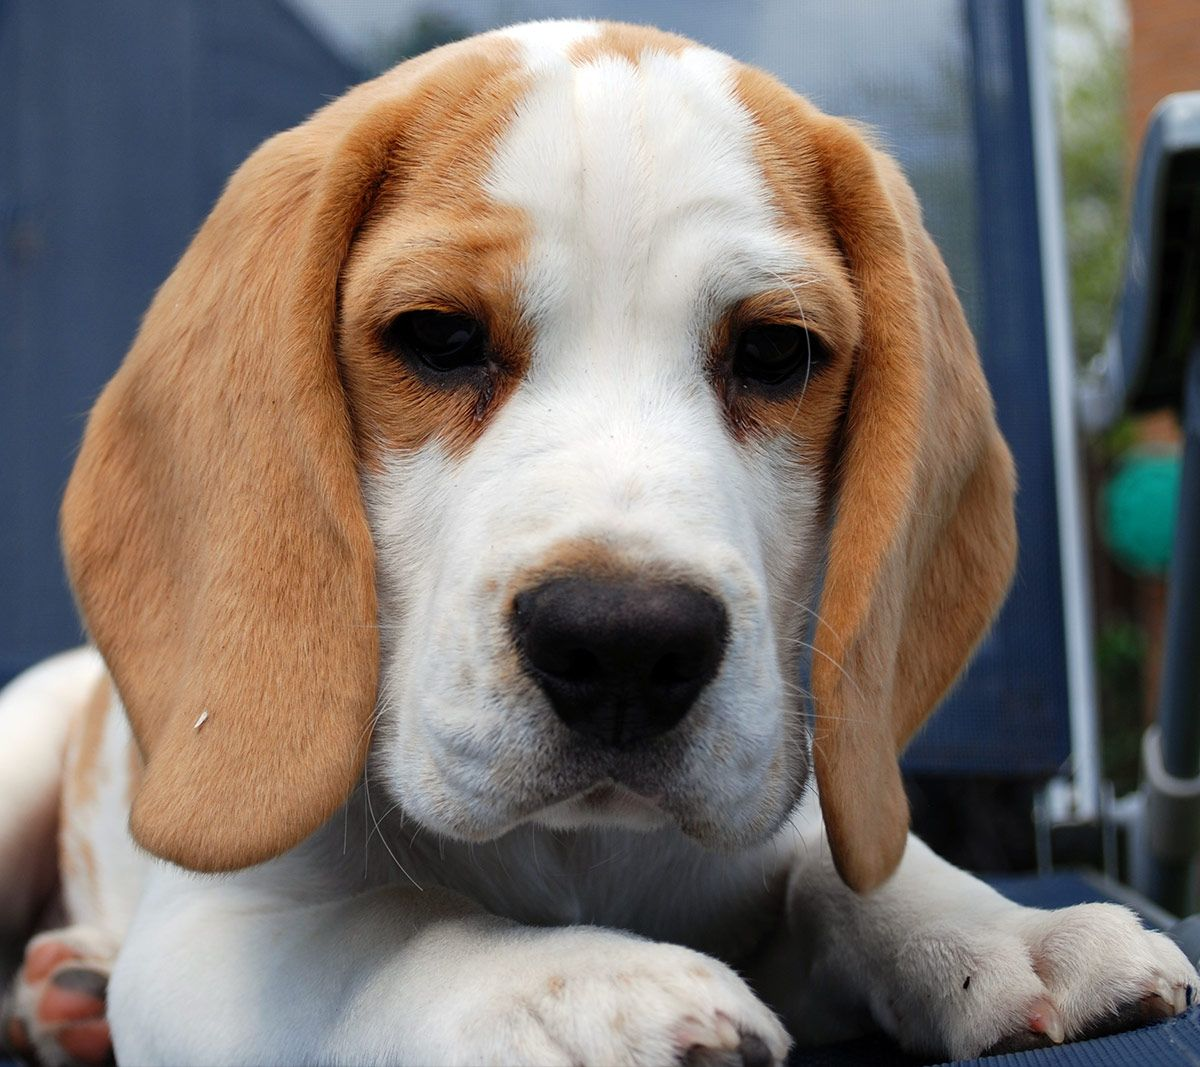 Lemon Beagle 33 Fantastic Facts From History To Present Day In